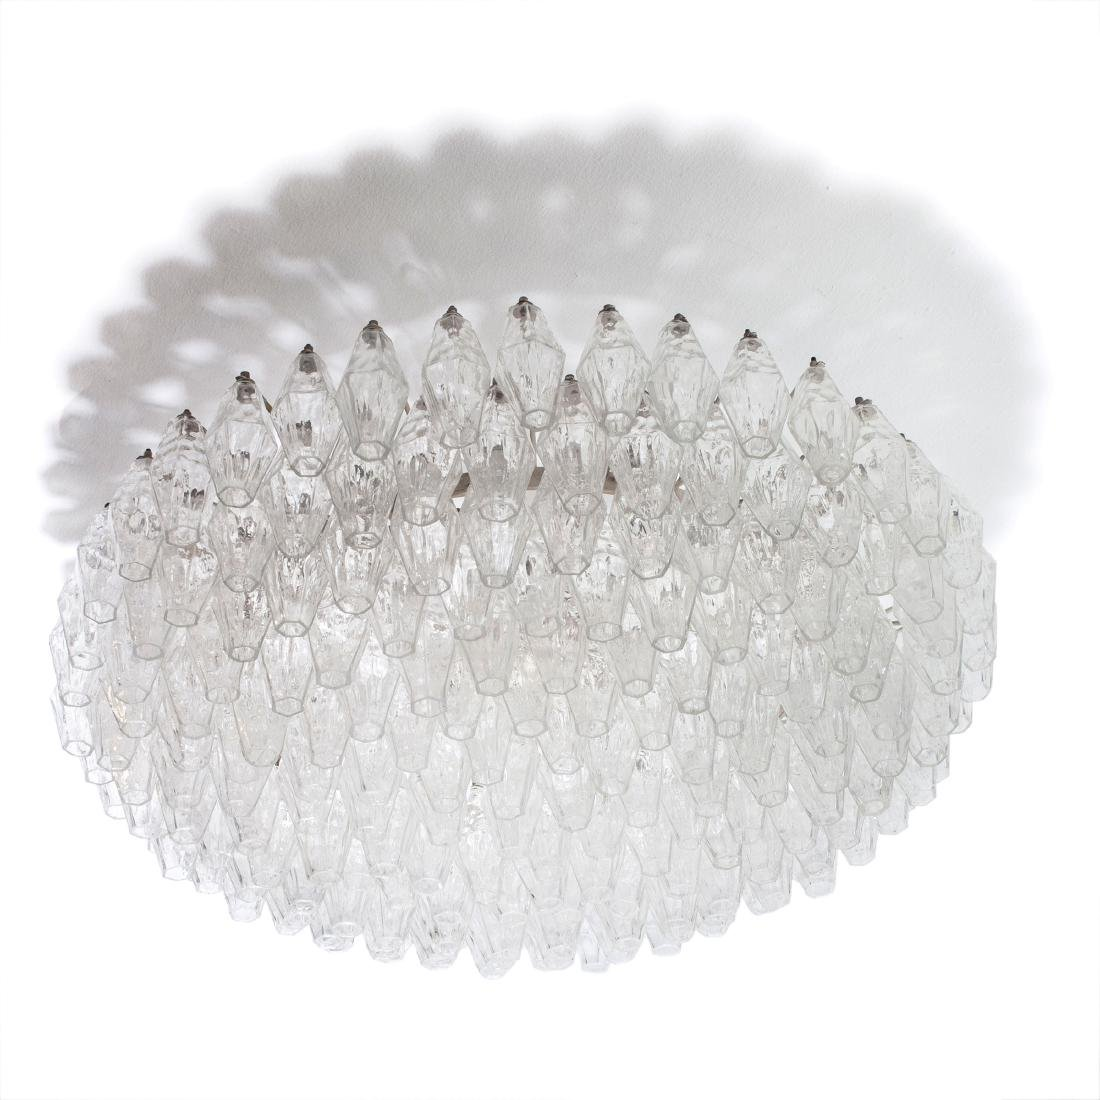 'Poliedrica' ceiling light, c. 1958